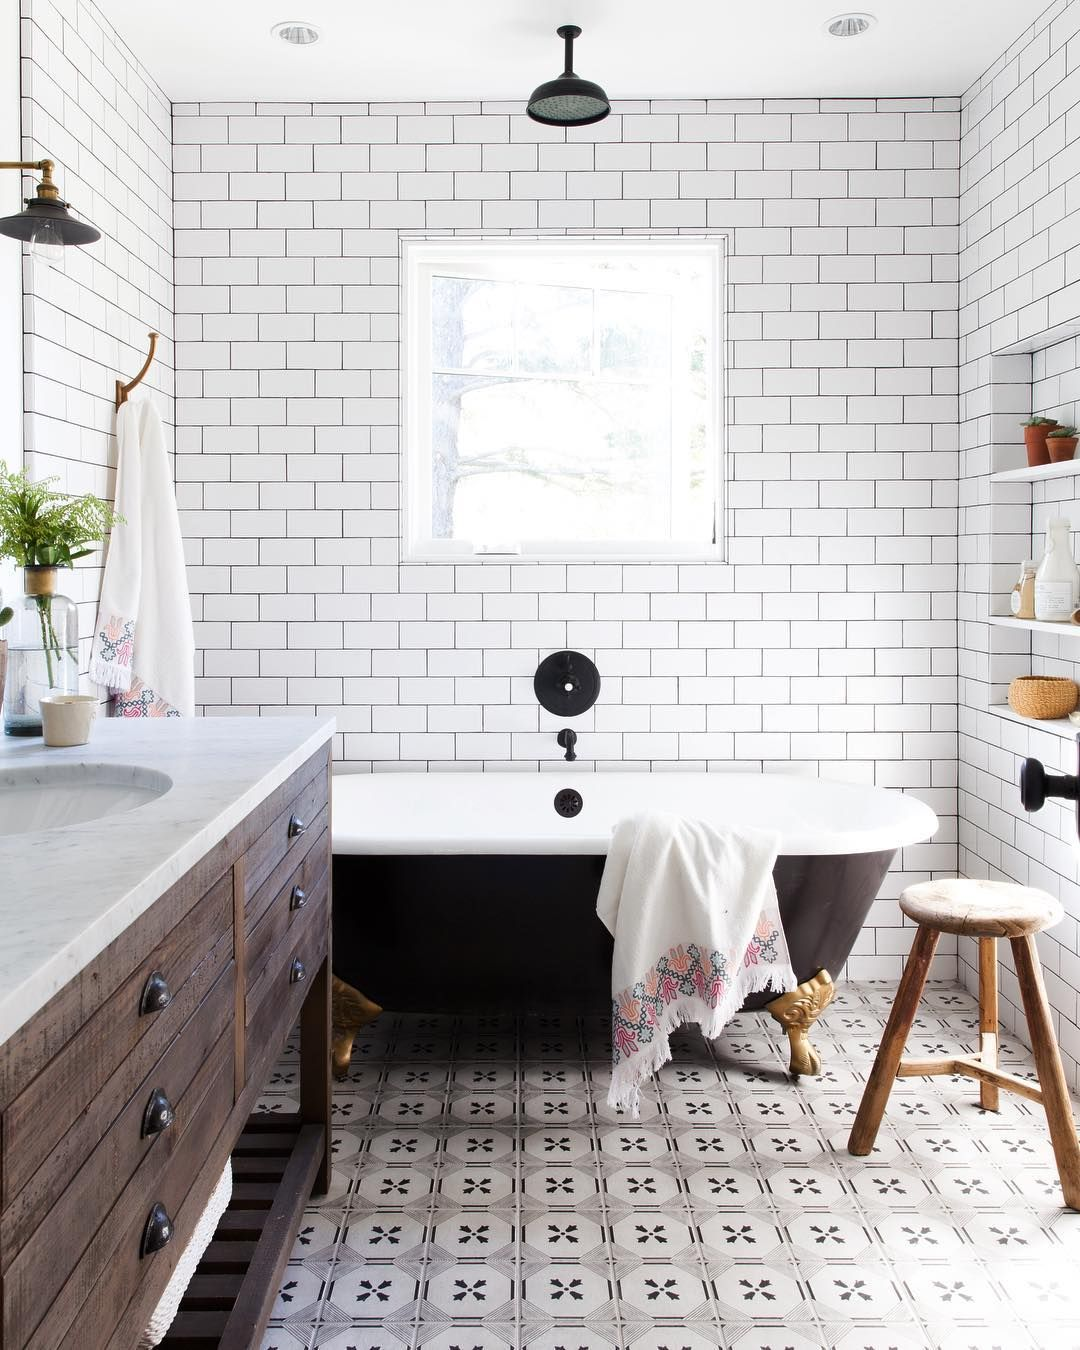 Subway tile bathroom with patterned tile floor and black clawfoot ...